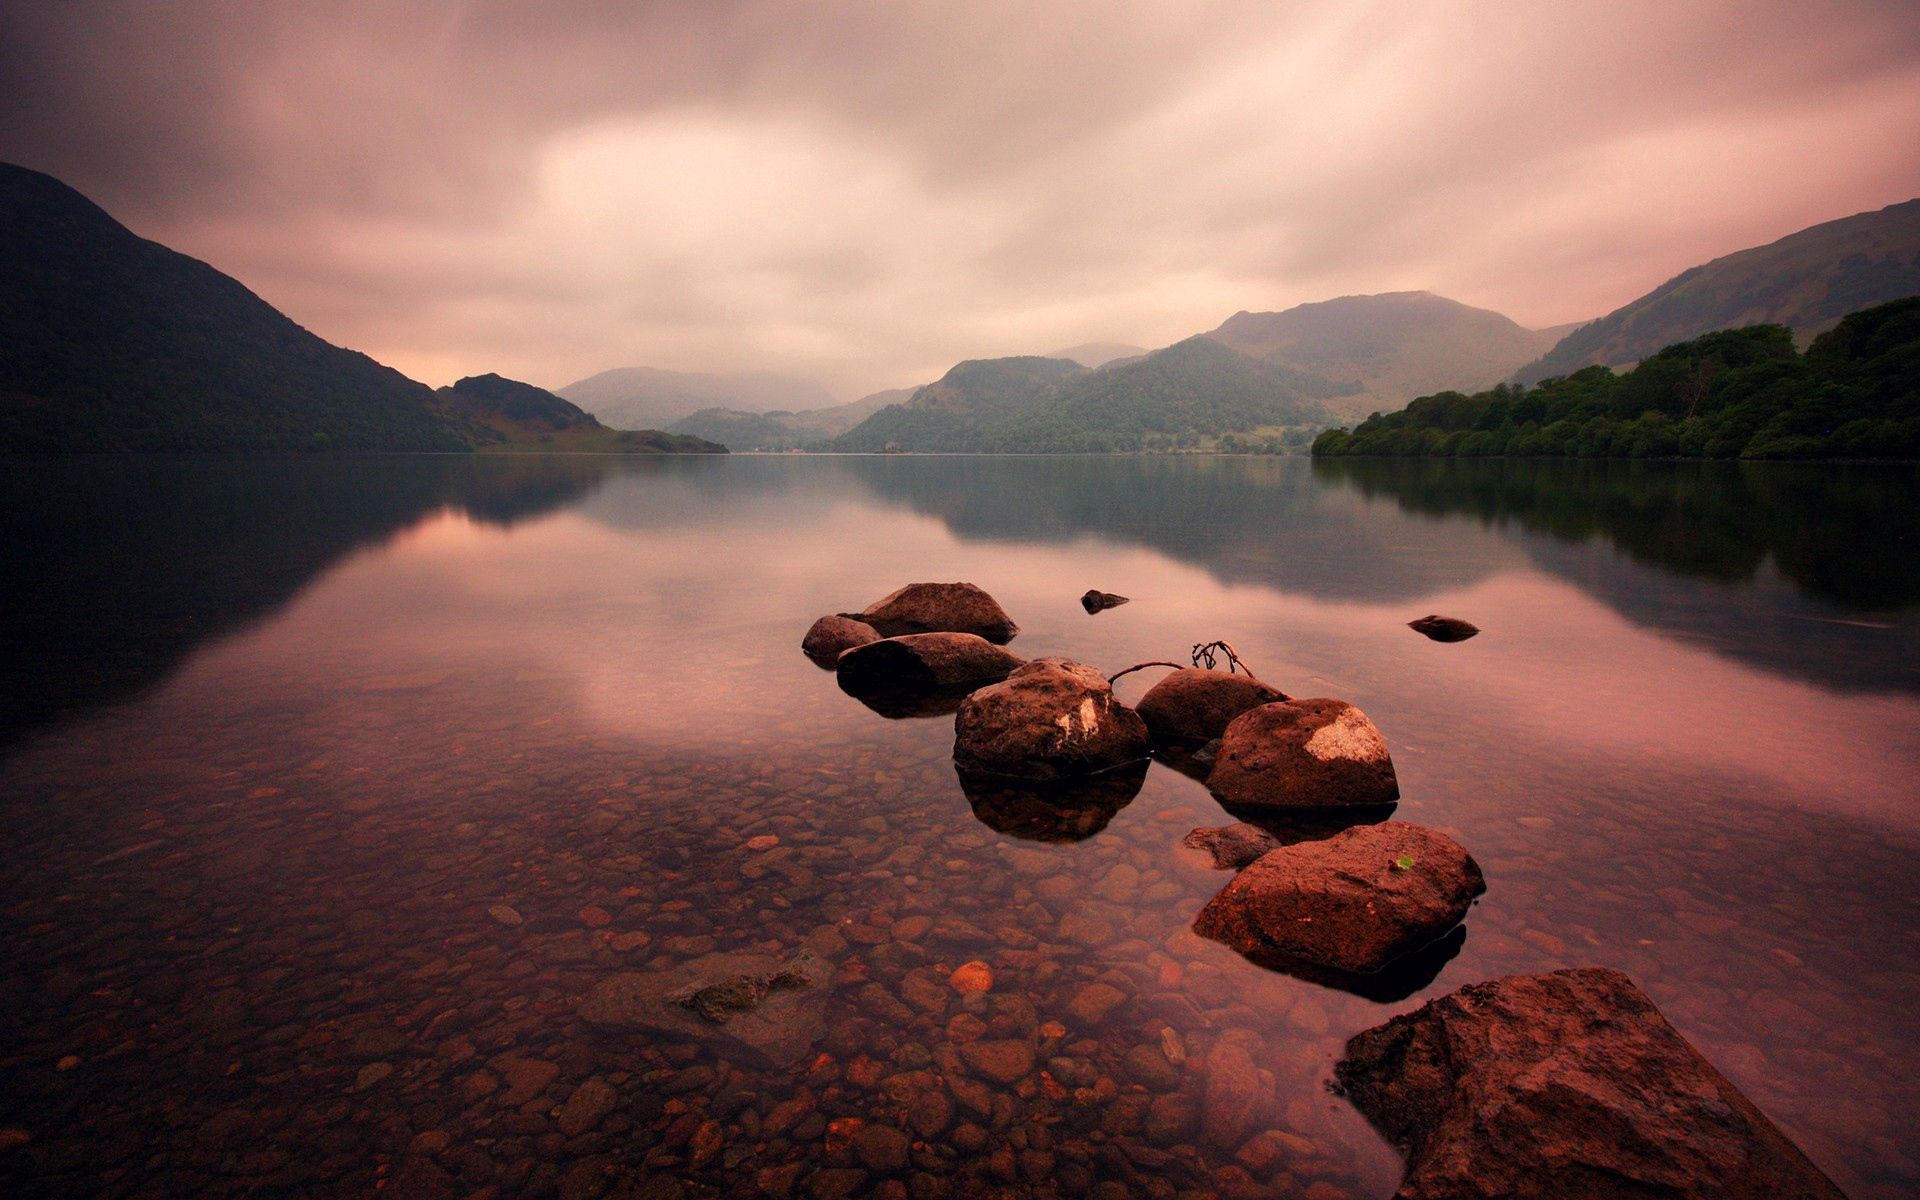 140504 download wallpaper Nature, Stones, Mountains, Lake screensavers and pictures for free